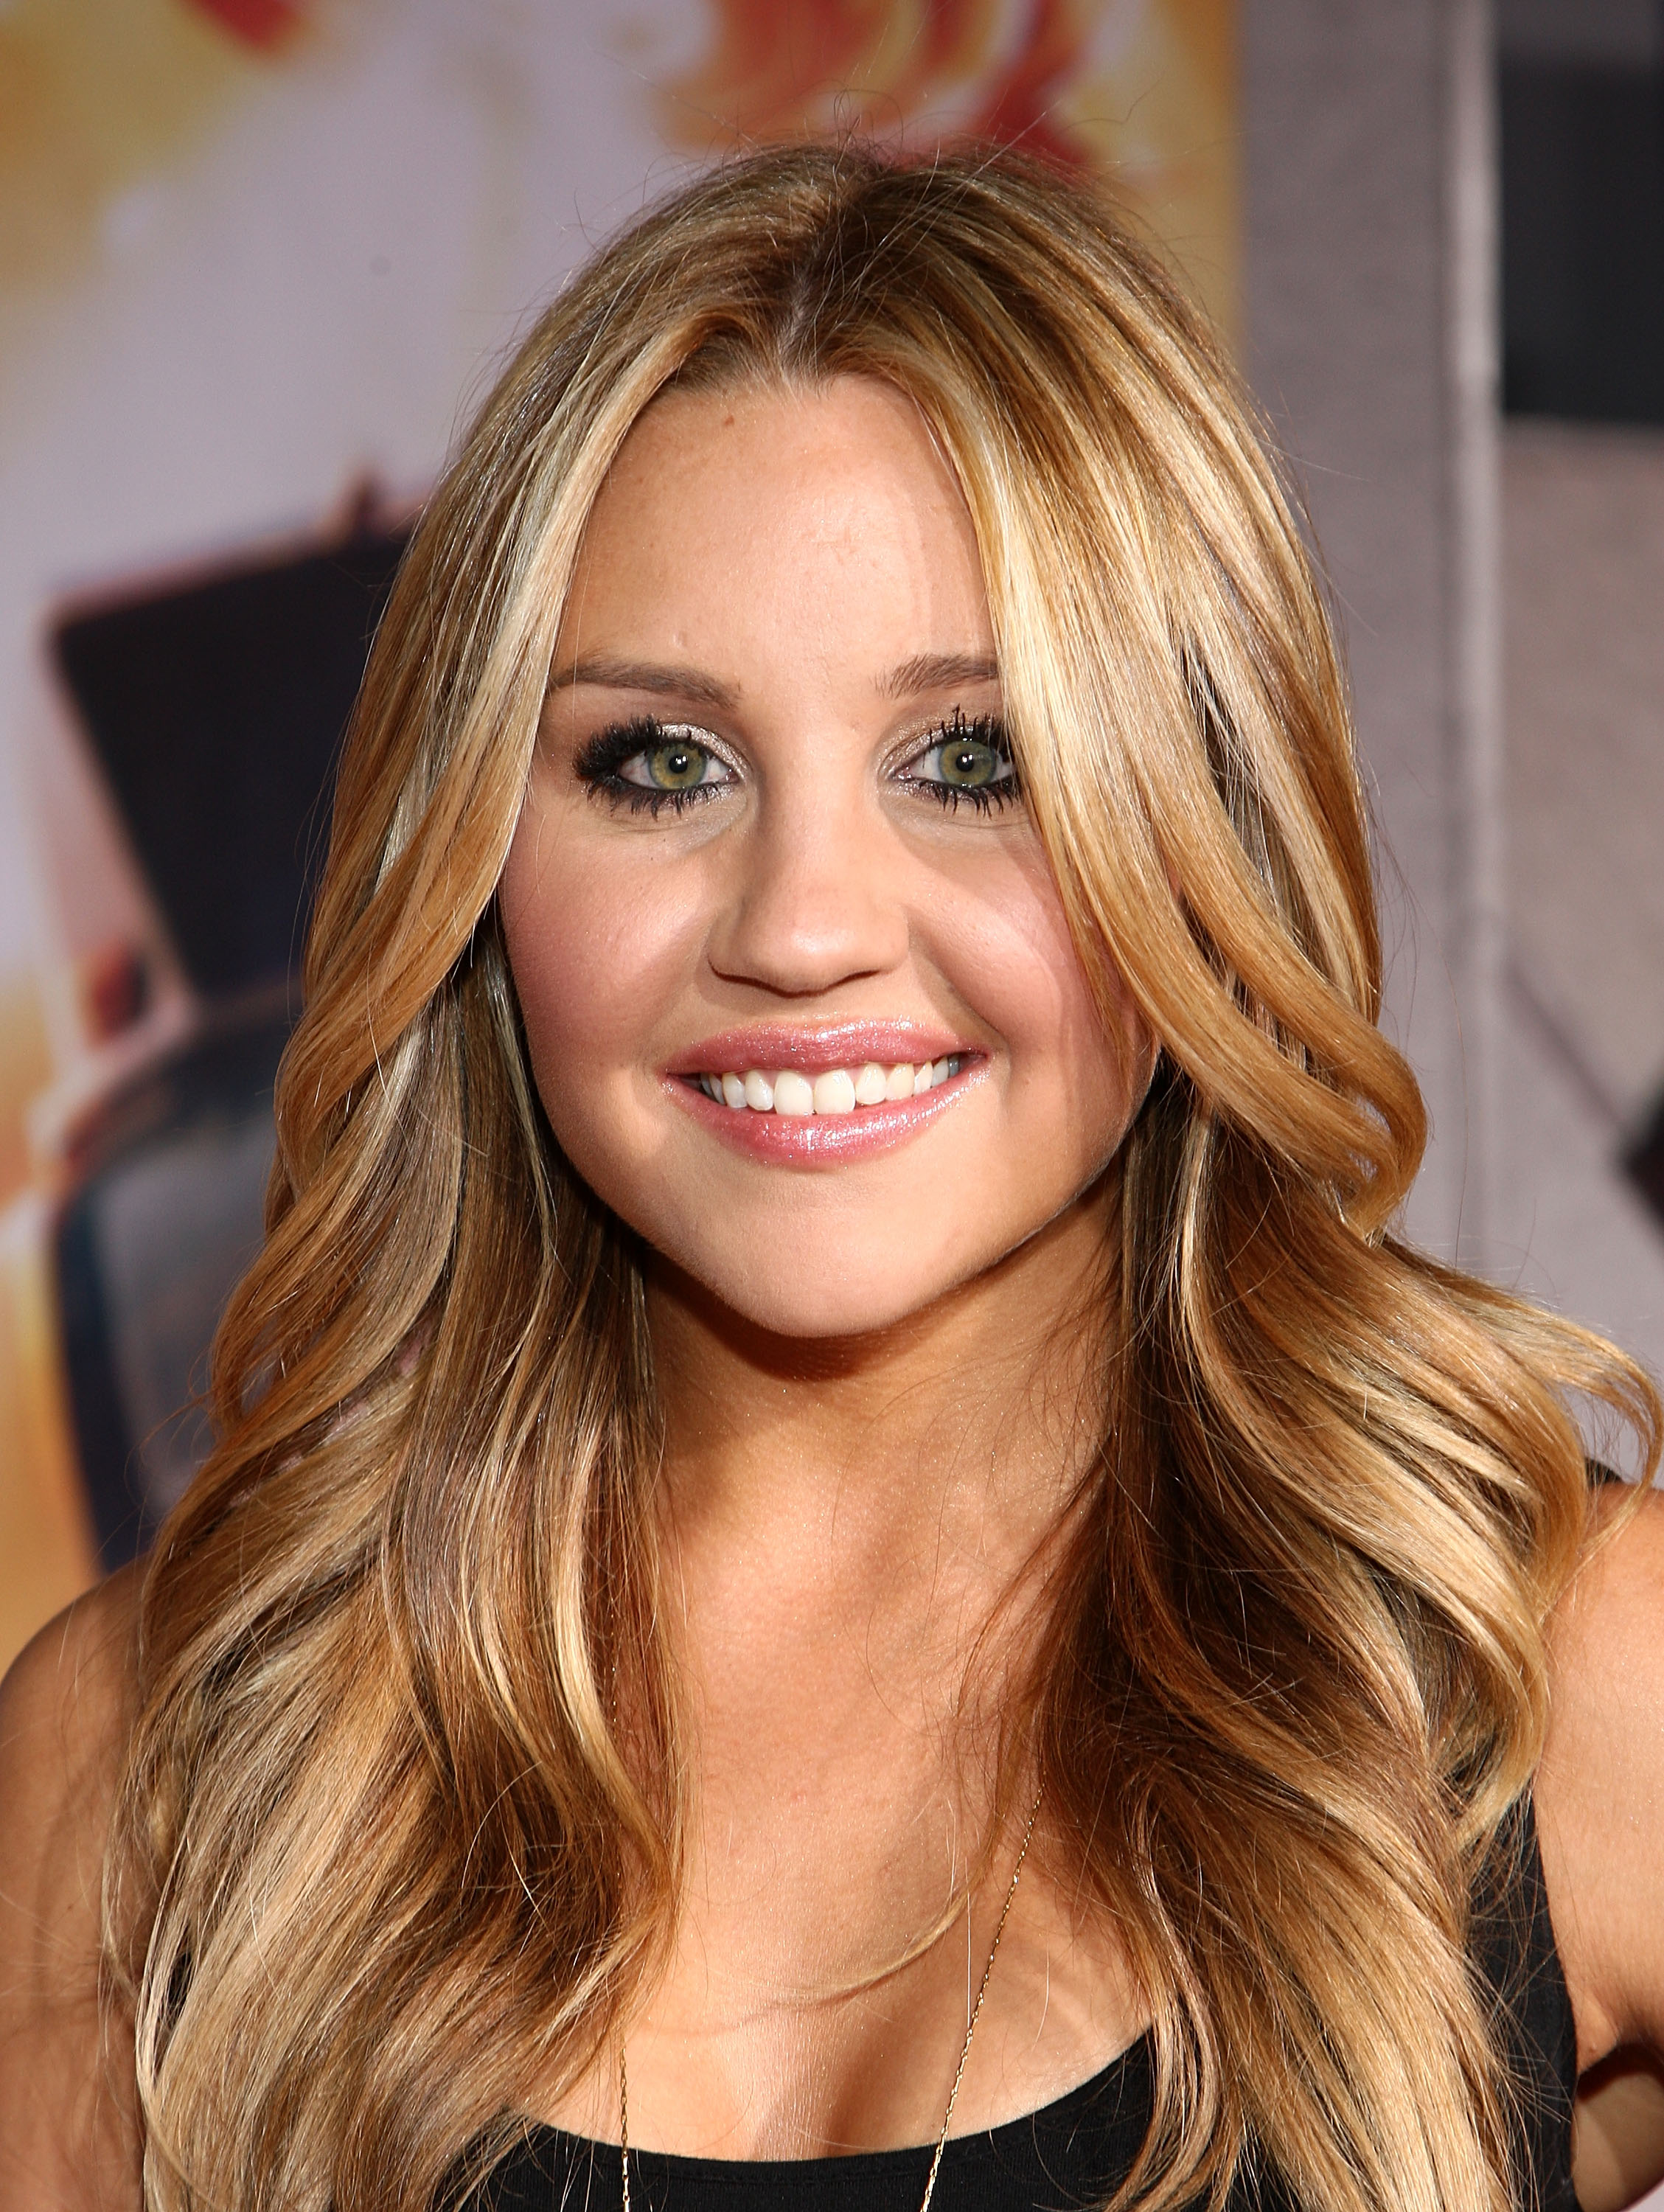 photo Amanda Bynes telechargement gratuit